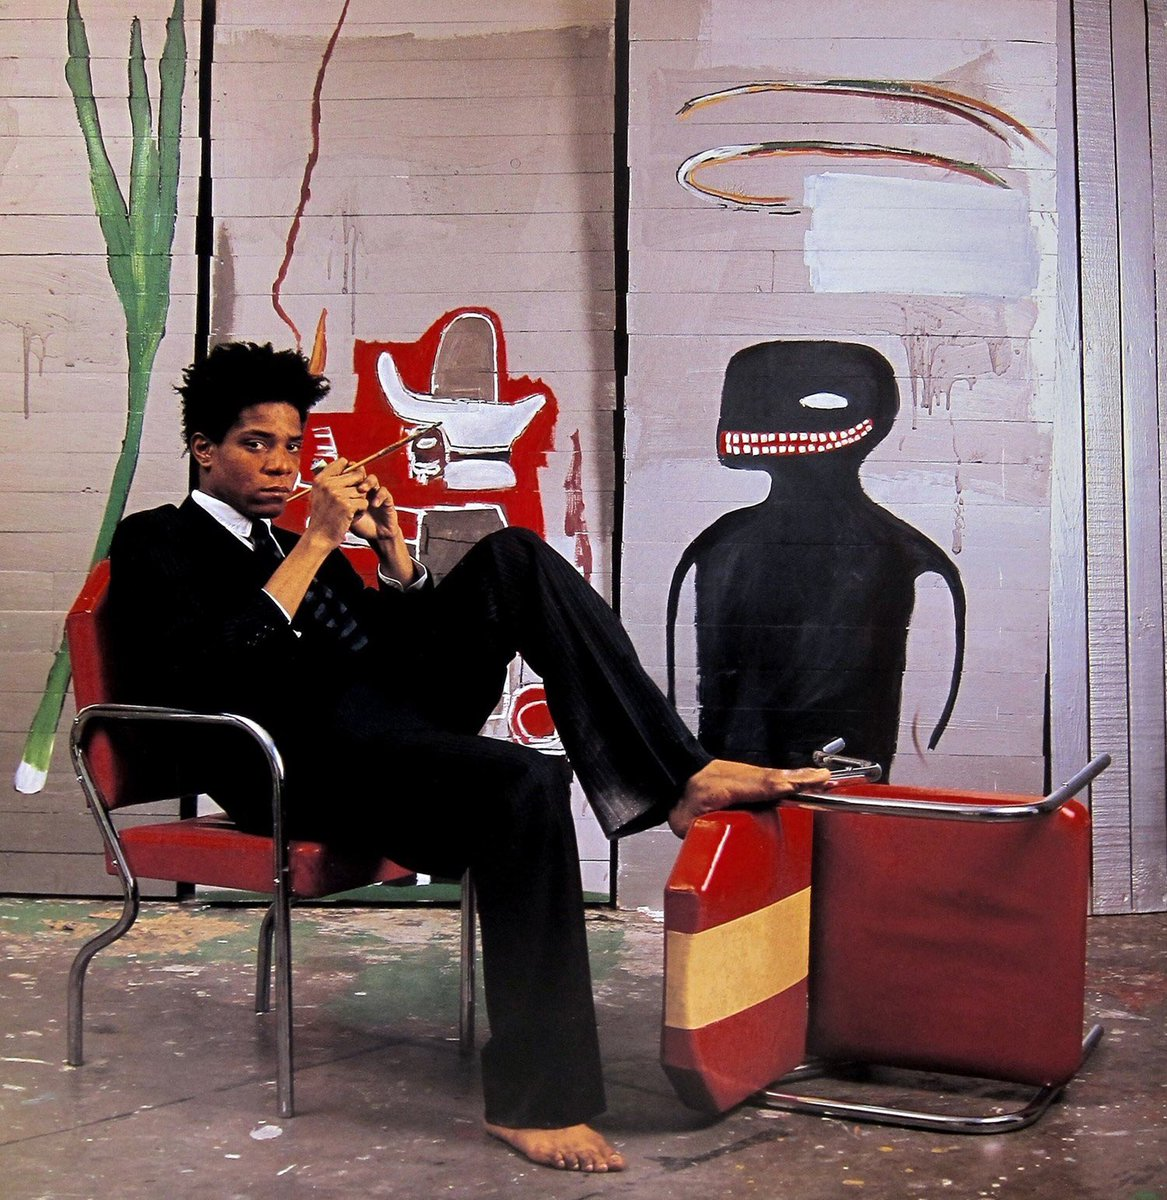 Excellent @BBCTwo documentary on #Basquiat makes me want to do Museum Wednesdays with @FABNEWYORK and talk chiaroscuro <br>http://pic.twitter.com/J1C8NfqGMn